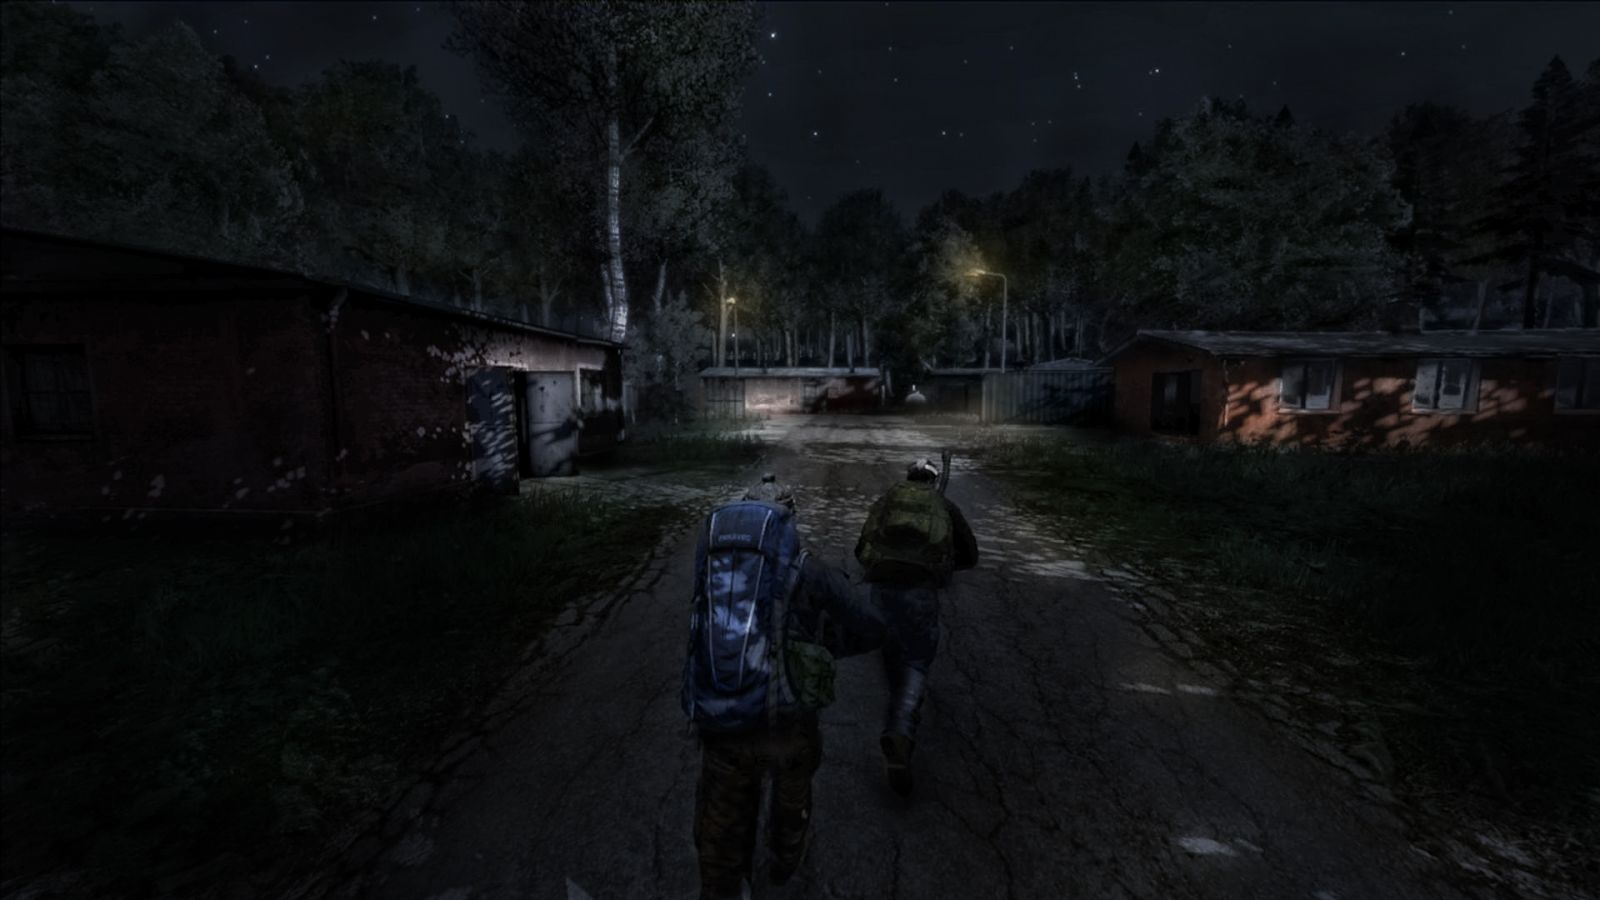 What a new renderer could possibly make night look